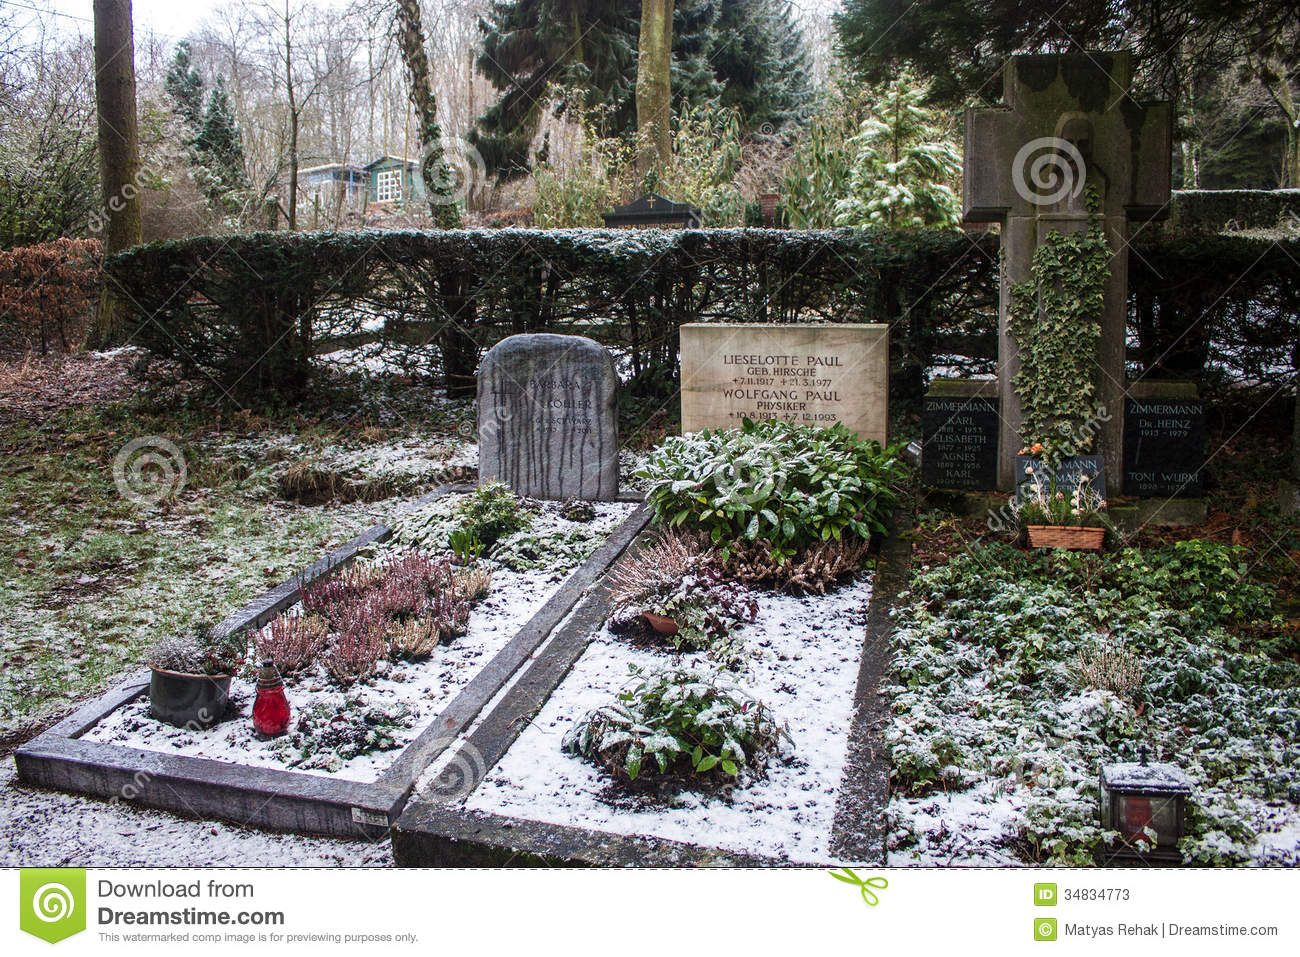 - tomb-wolfgang-paul-bonn-germany-feb-poppelsdorf-cemetery-feb-bonn-germany-was-german-physicist-34834773